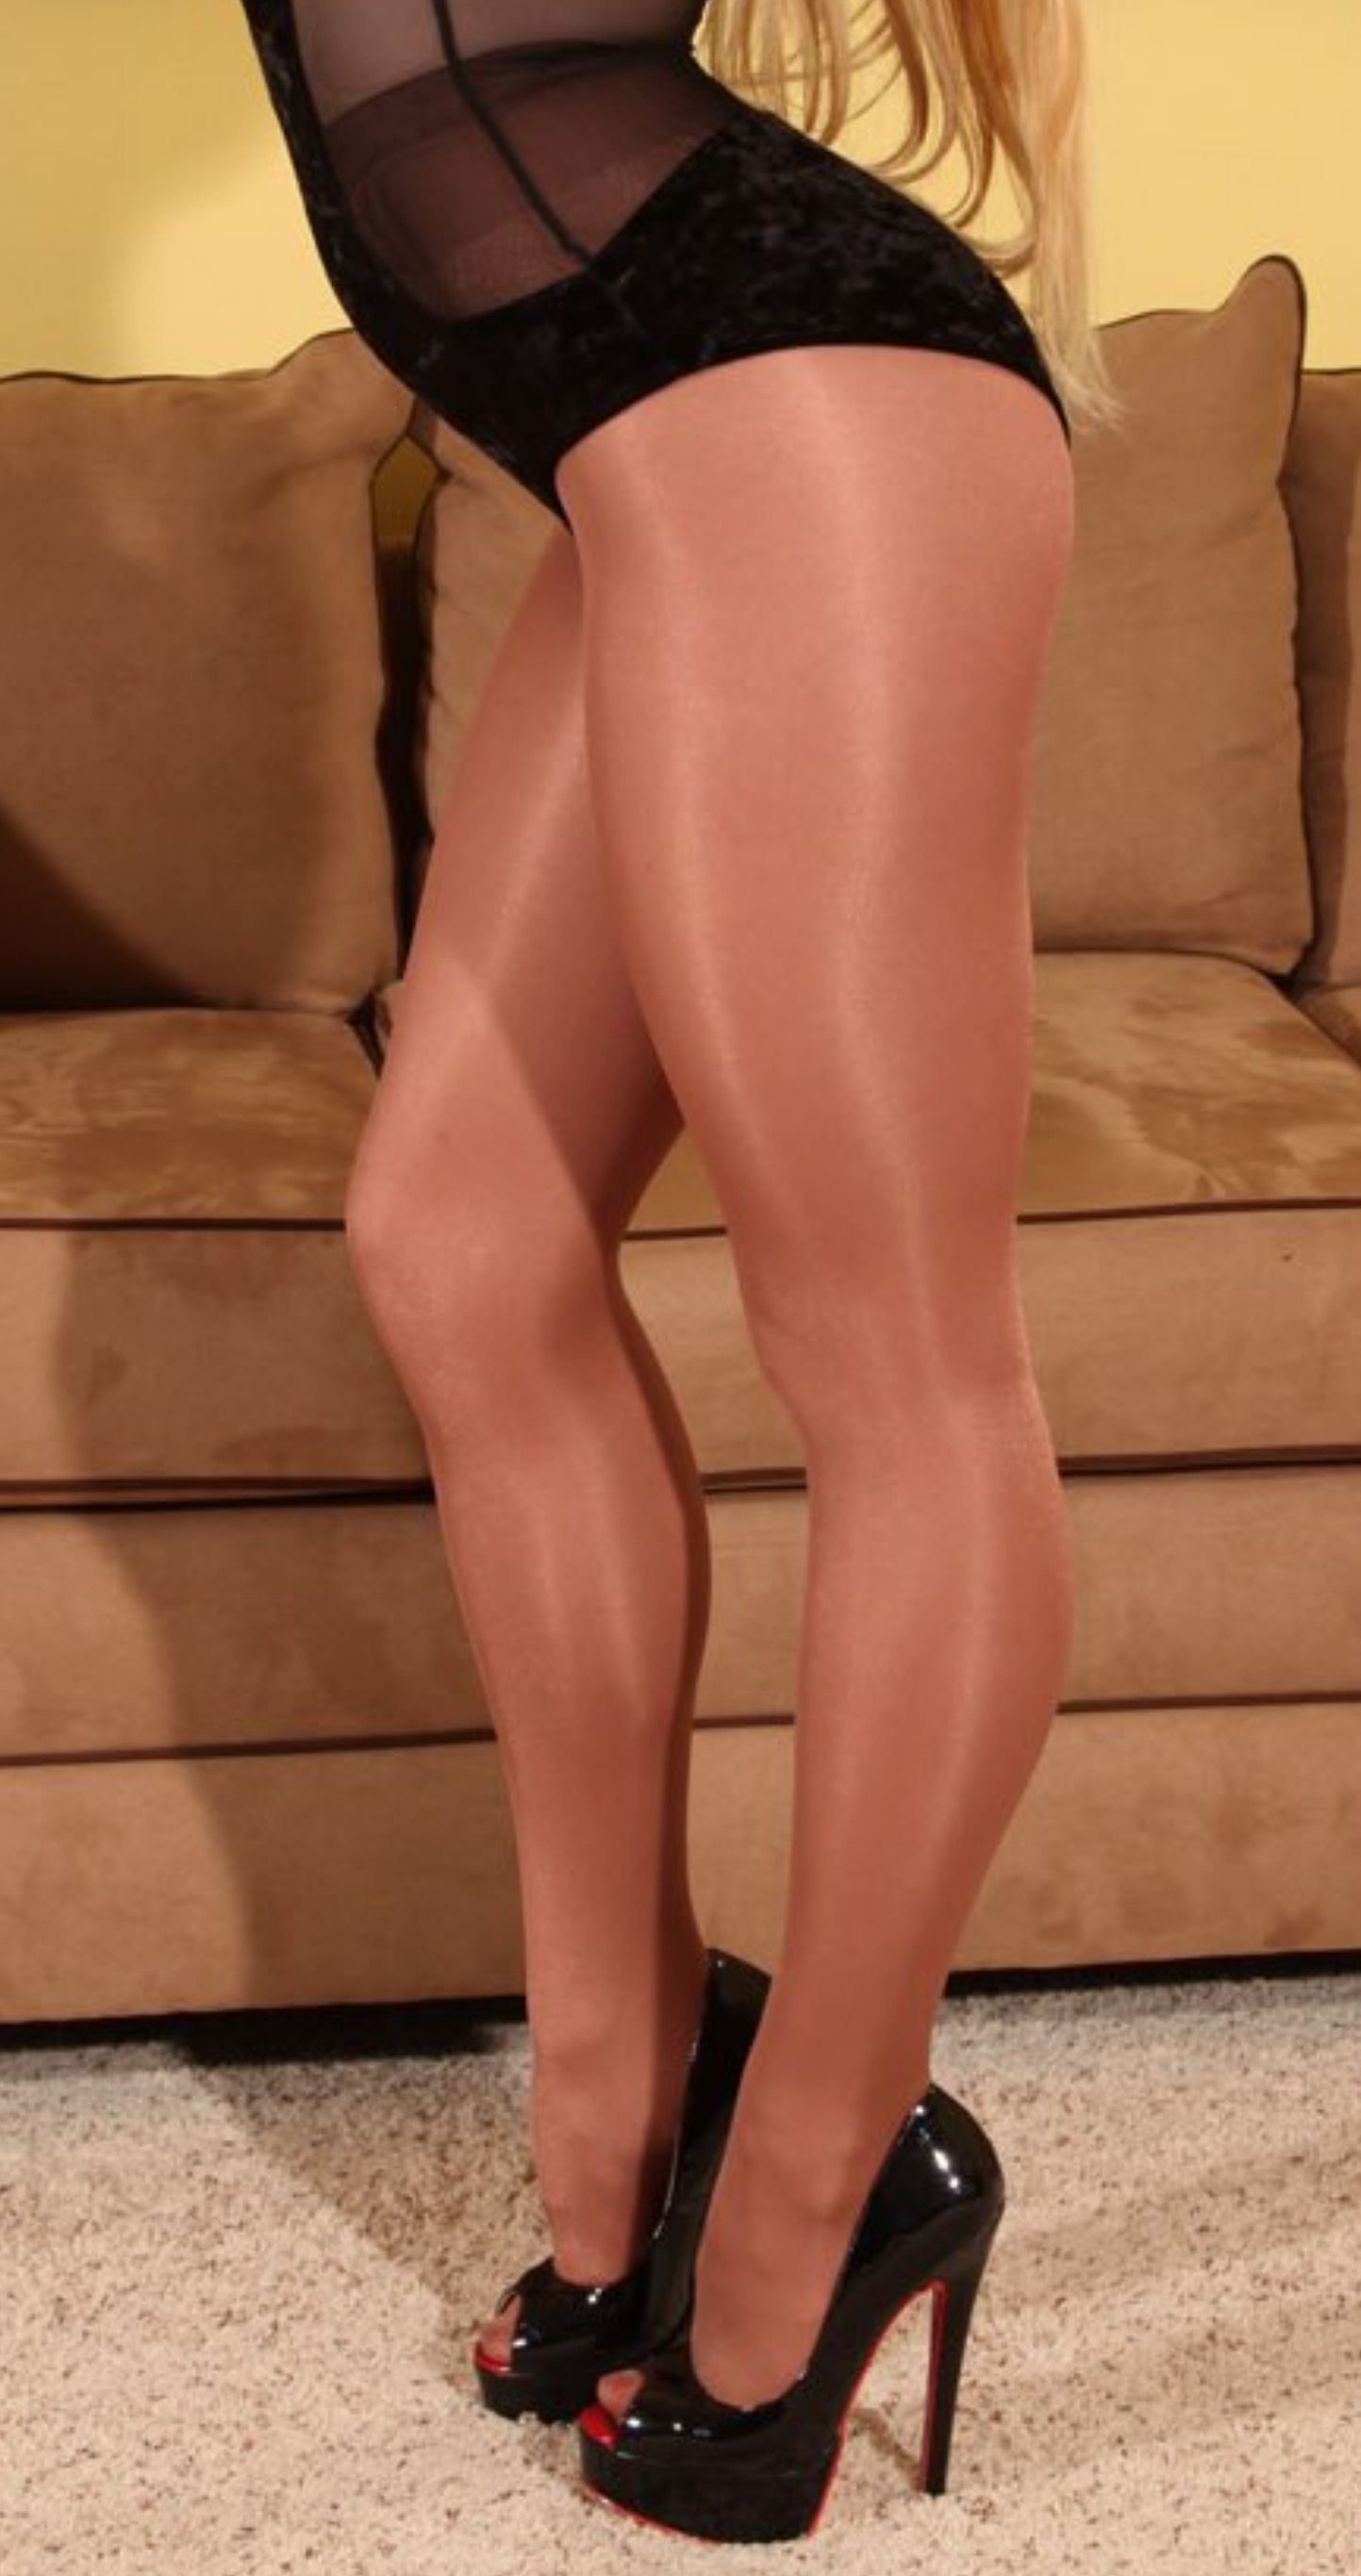 My Own Pantyhose Girls I